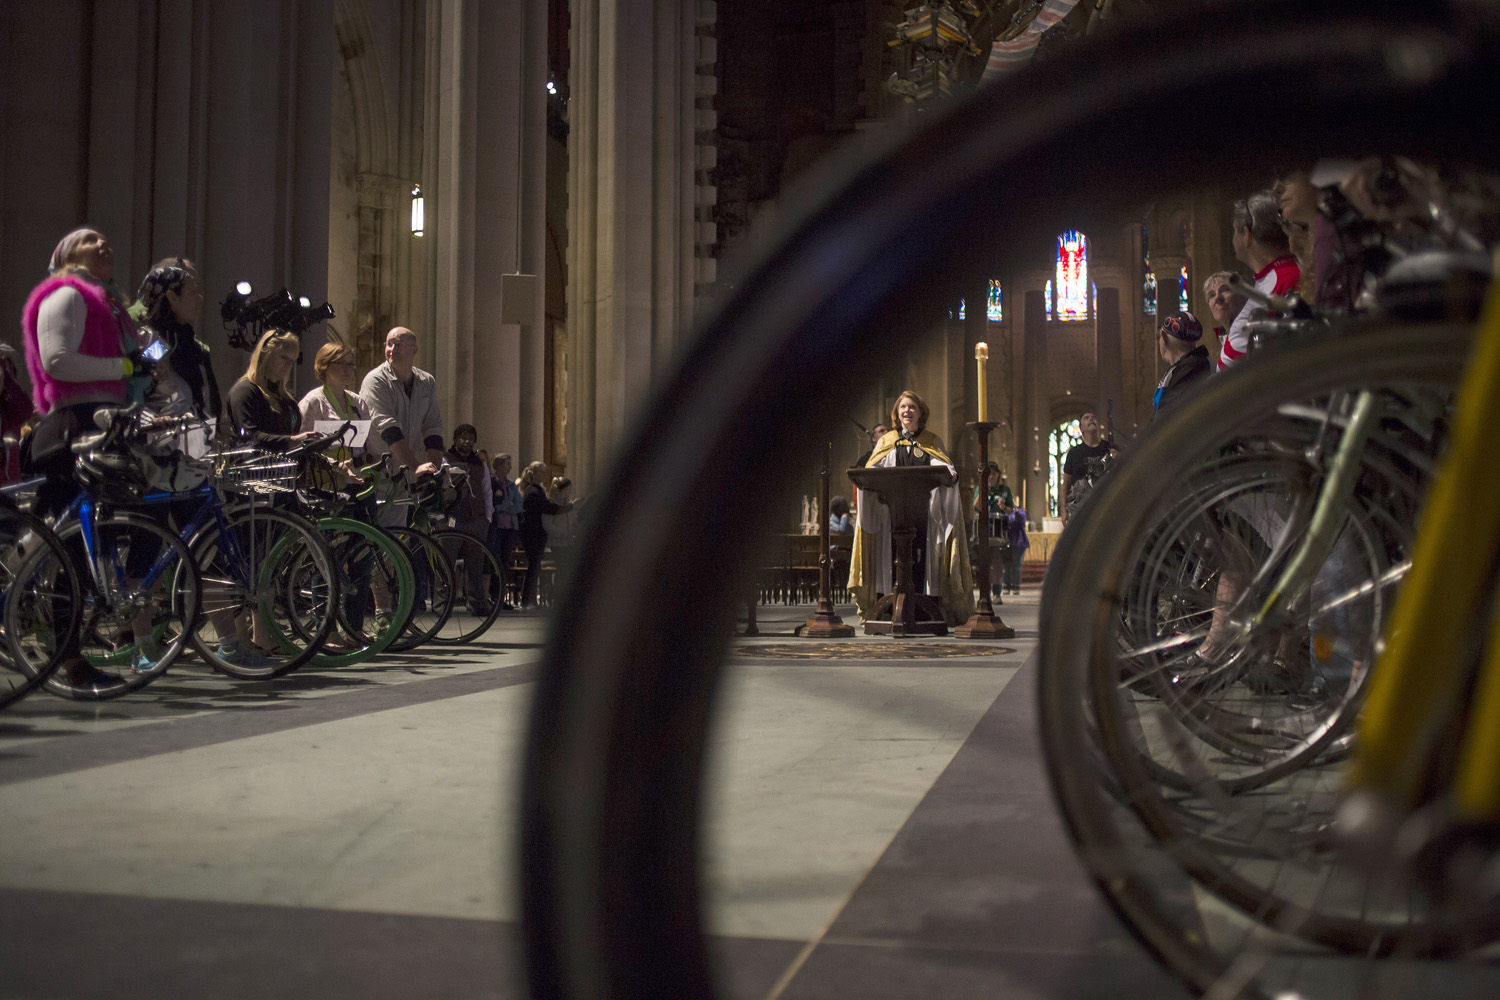 Reverend Julia Whitworth leads the 16th Annual Blessing of the Bikes at Cathedral Church of St. John the Divine on in New York City on May 3, 2014.